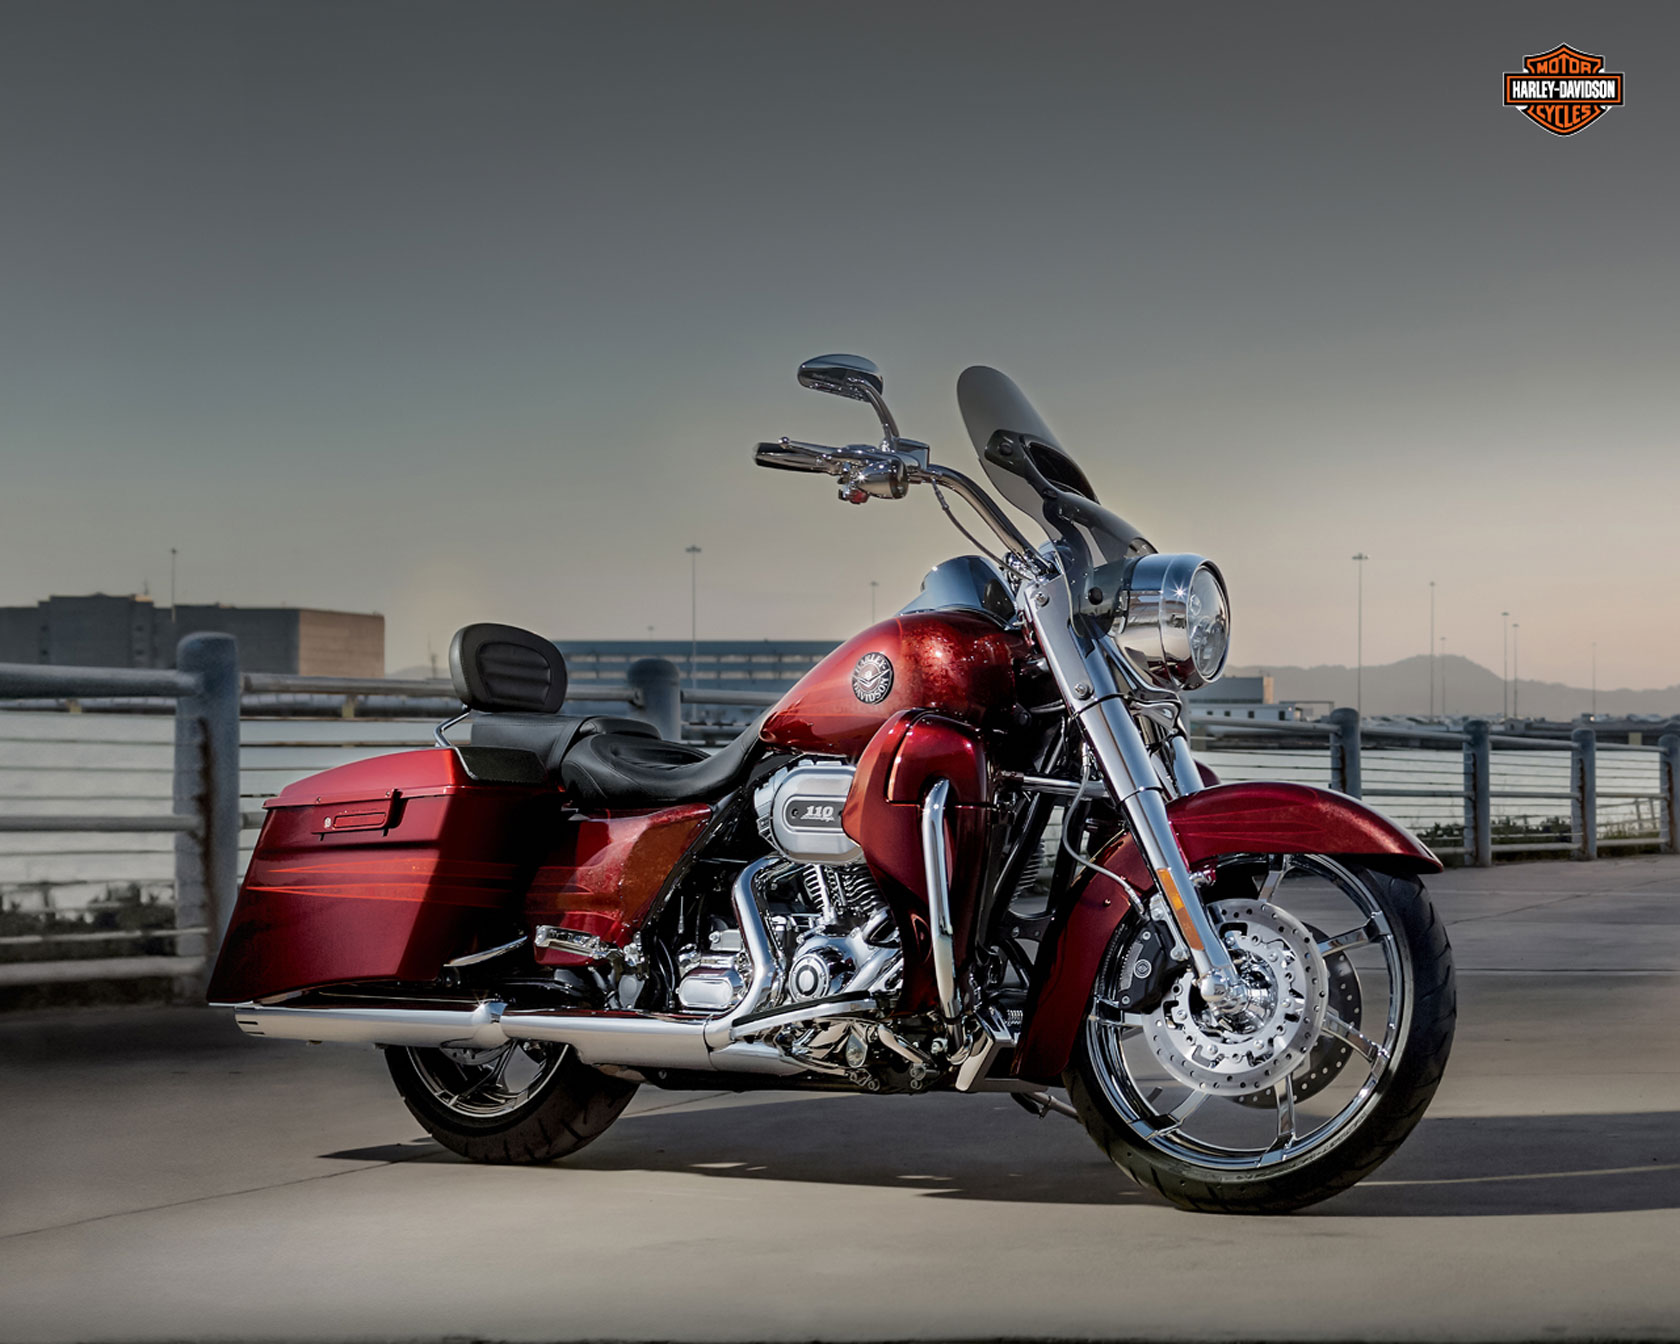 2013 Harley-Davidson FLHRSE5 CVO Road King Review